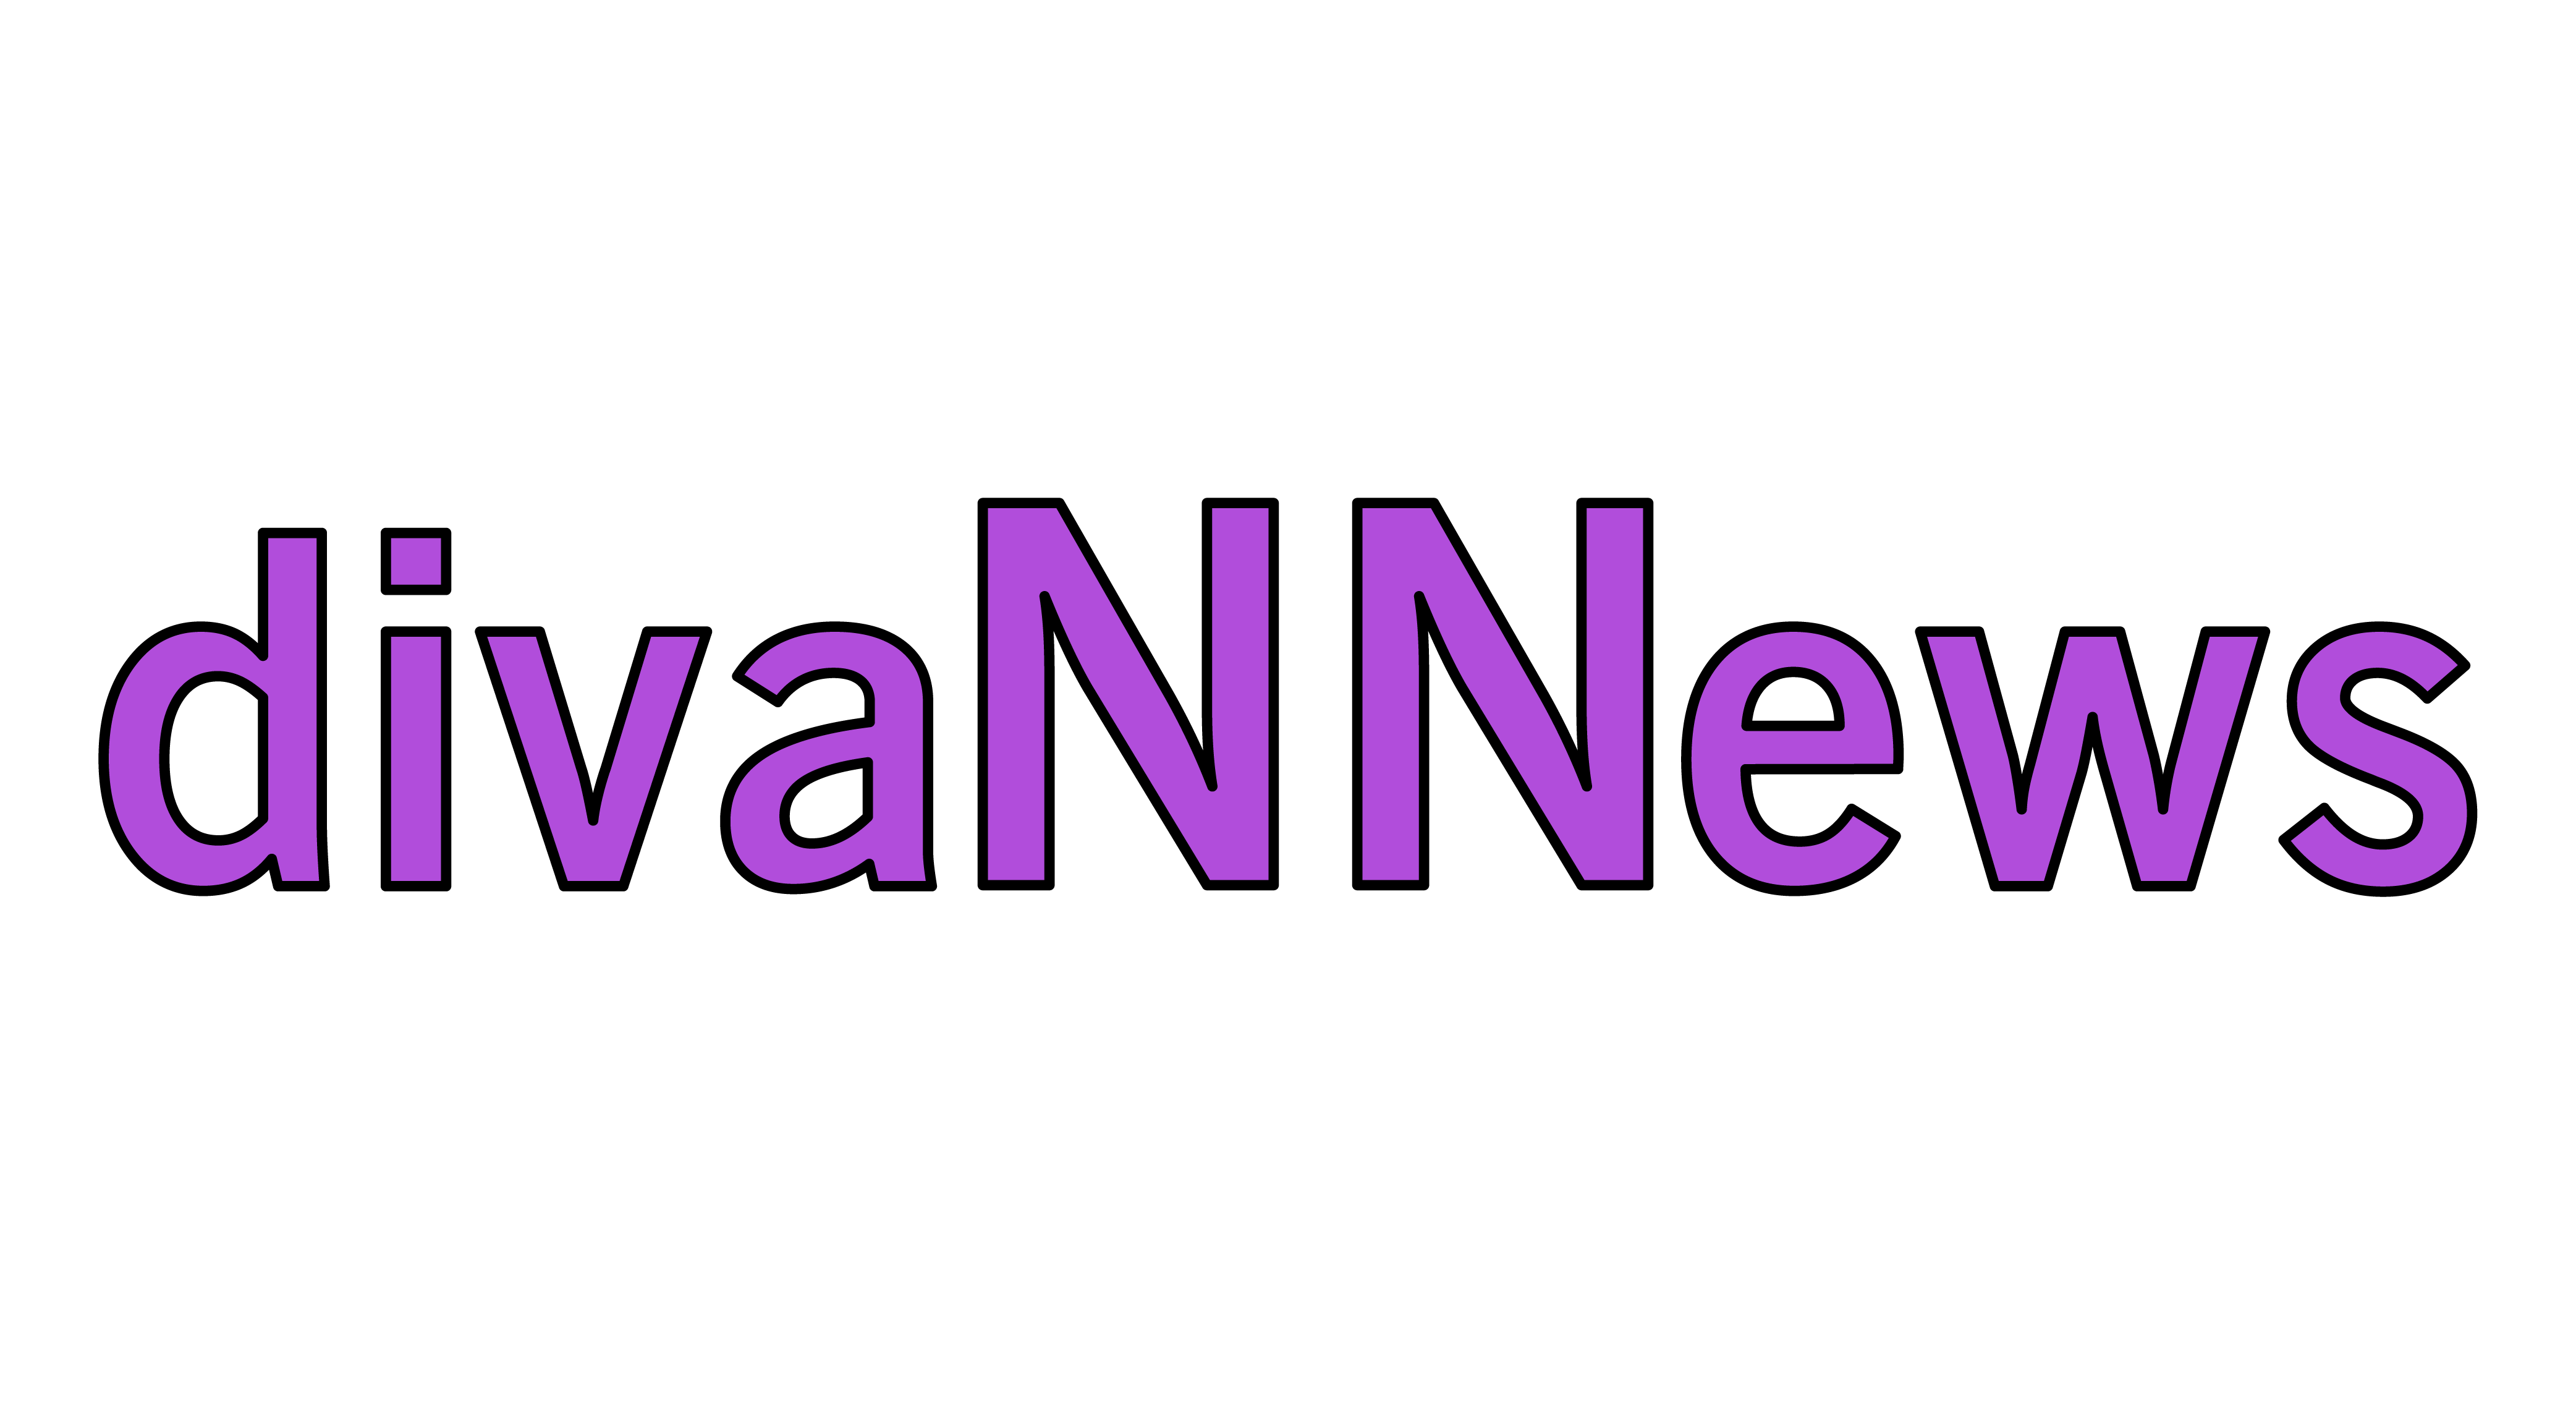 DivanNews